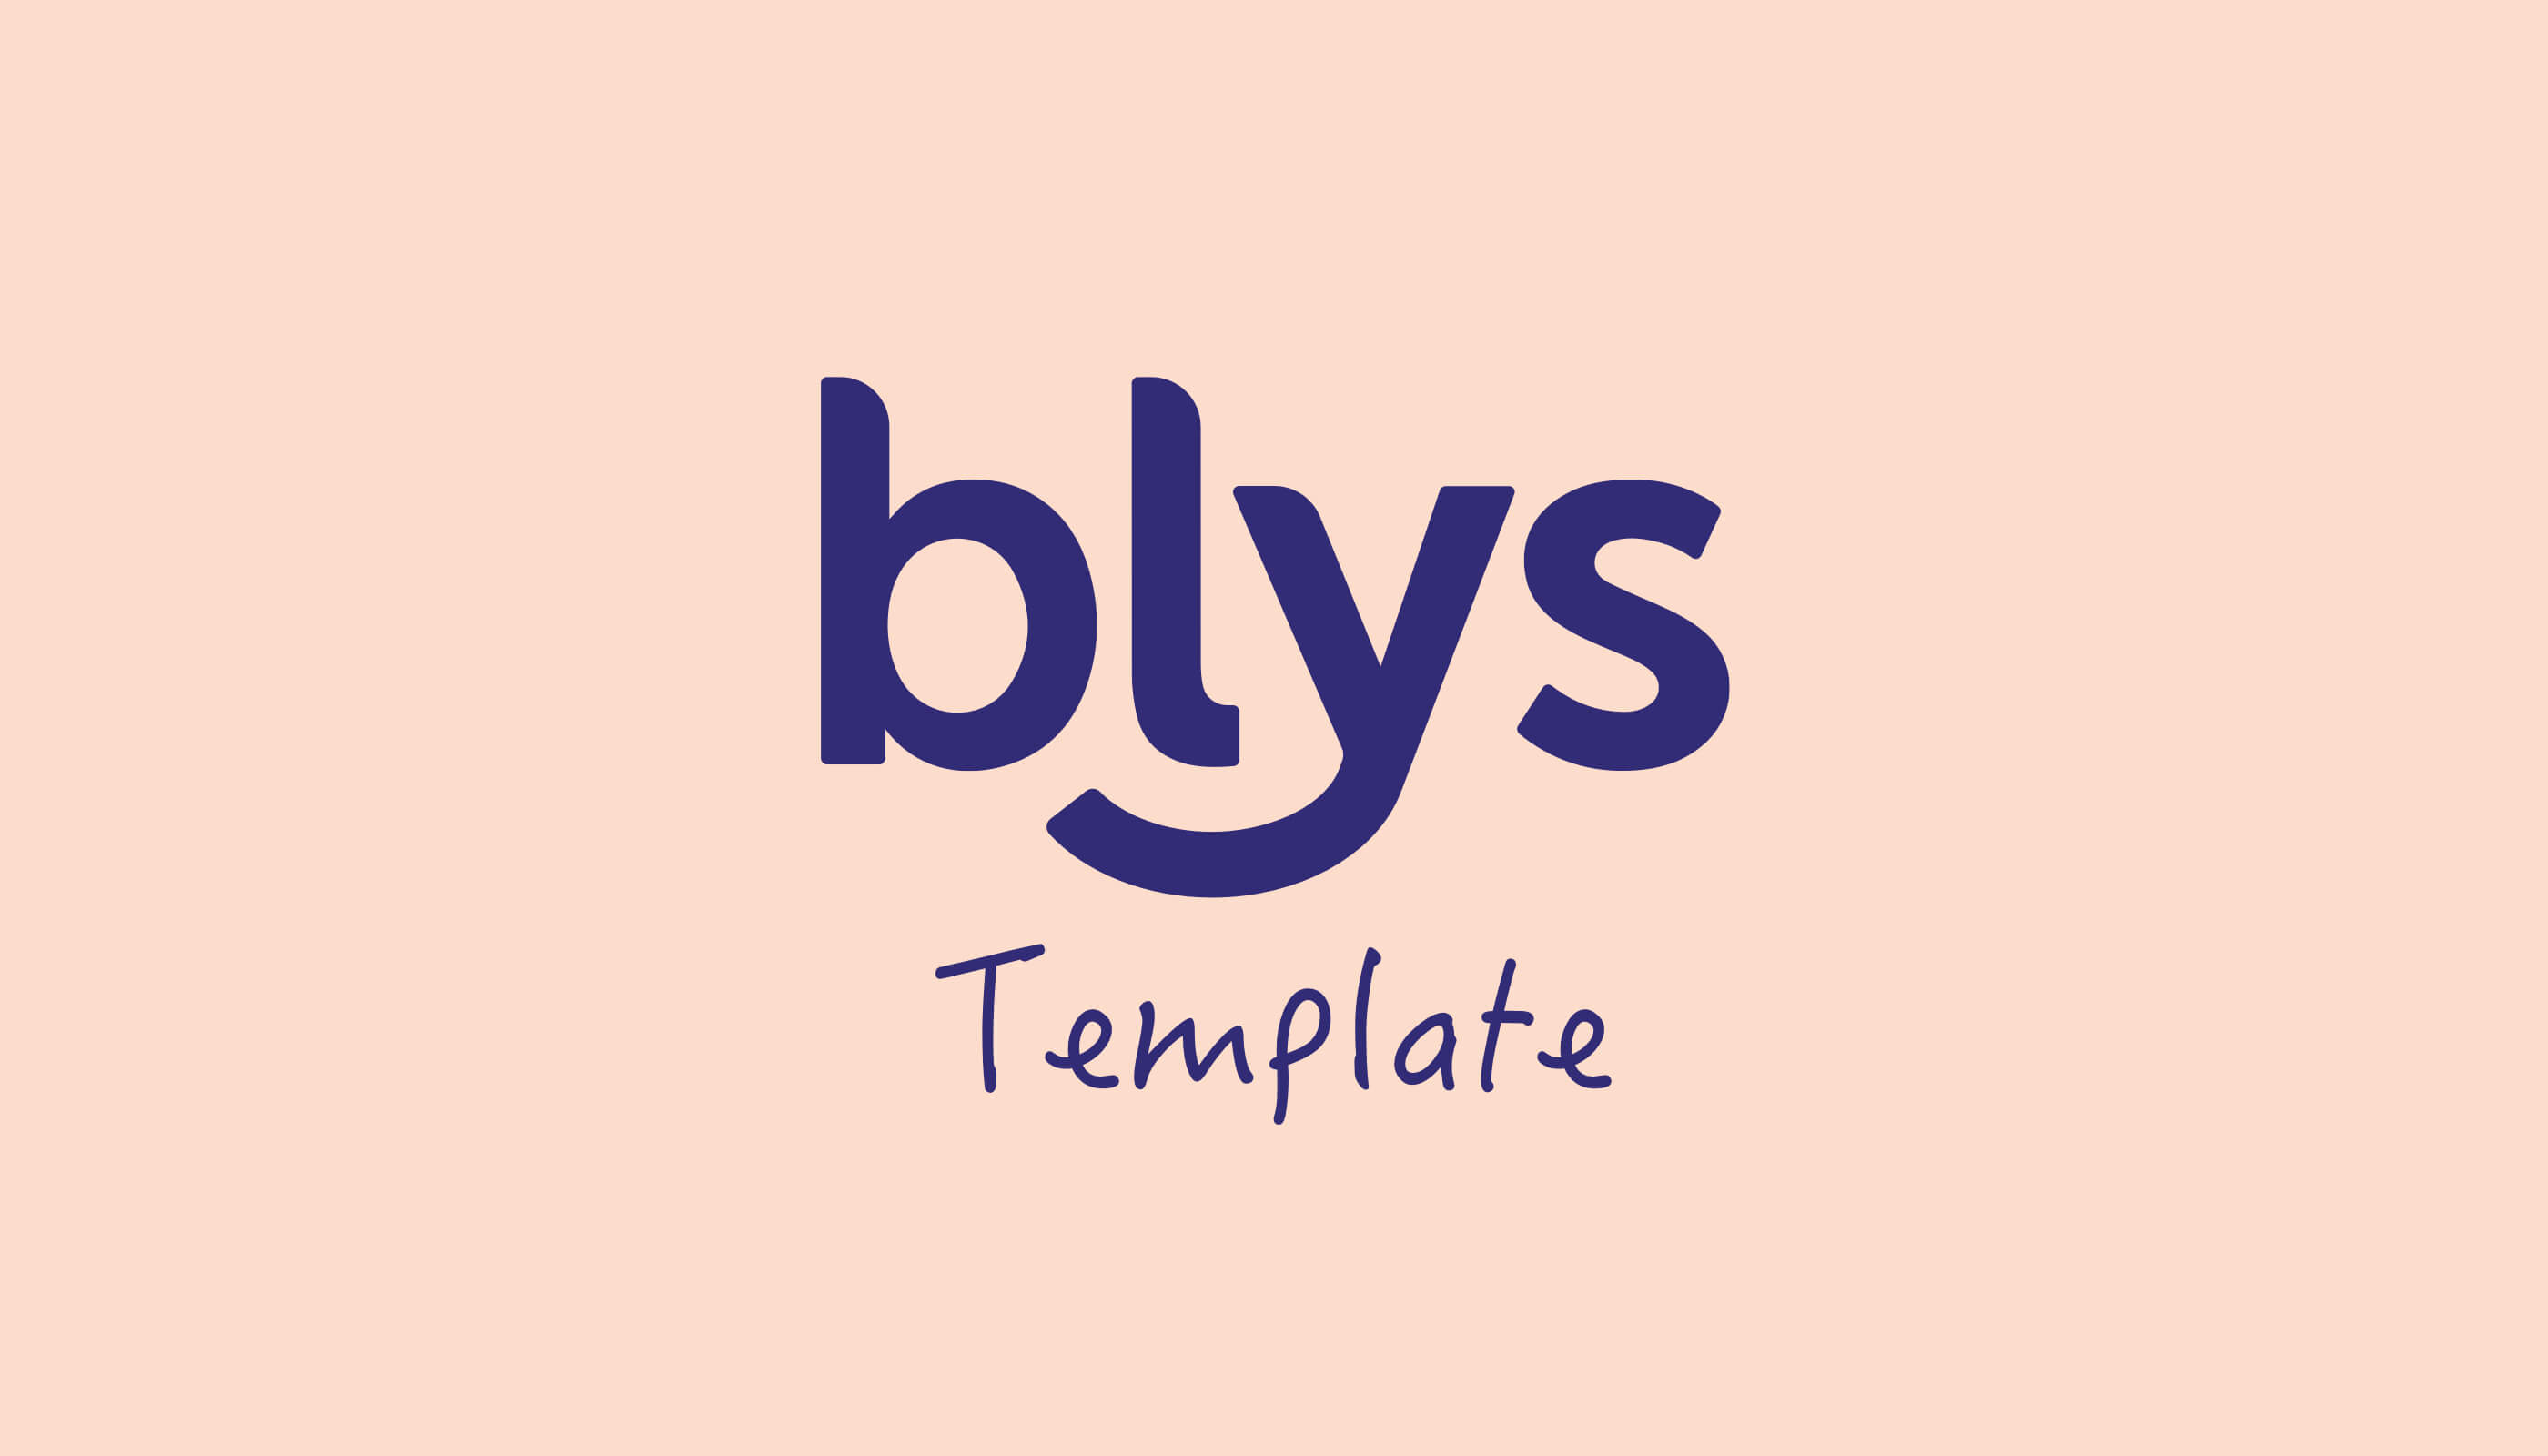 Blys logo with the word template against pale pink background